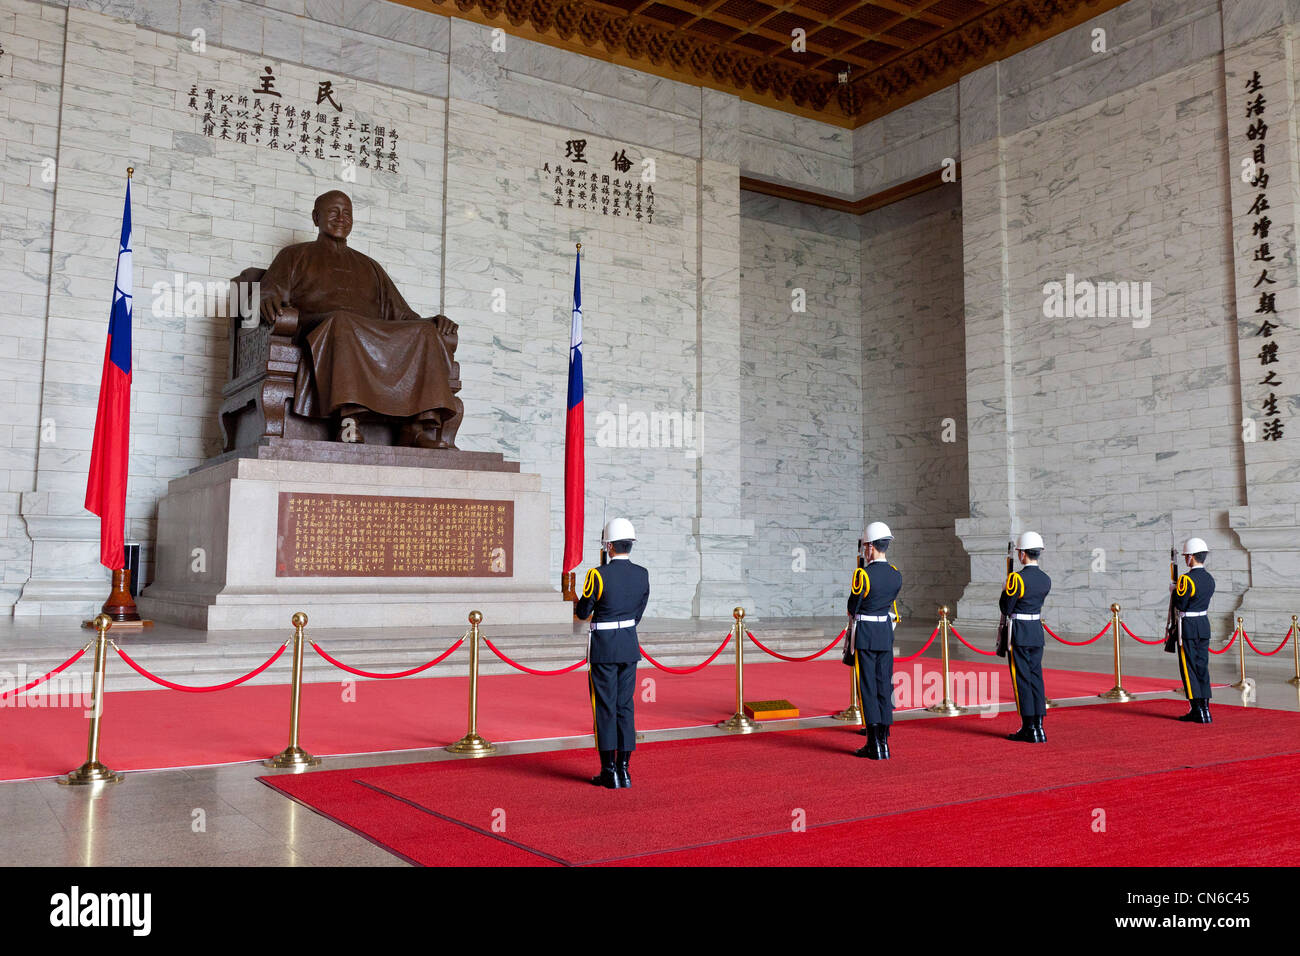 Changing the Guard at Chiang Kai-shek Memorial Hall, Taipei, Taiwan. JMH5652 - Stock Image